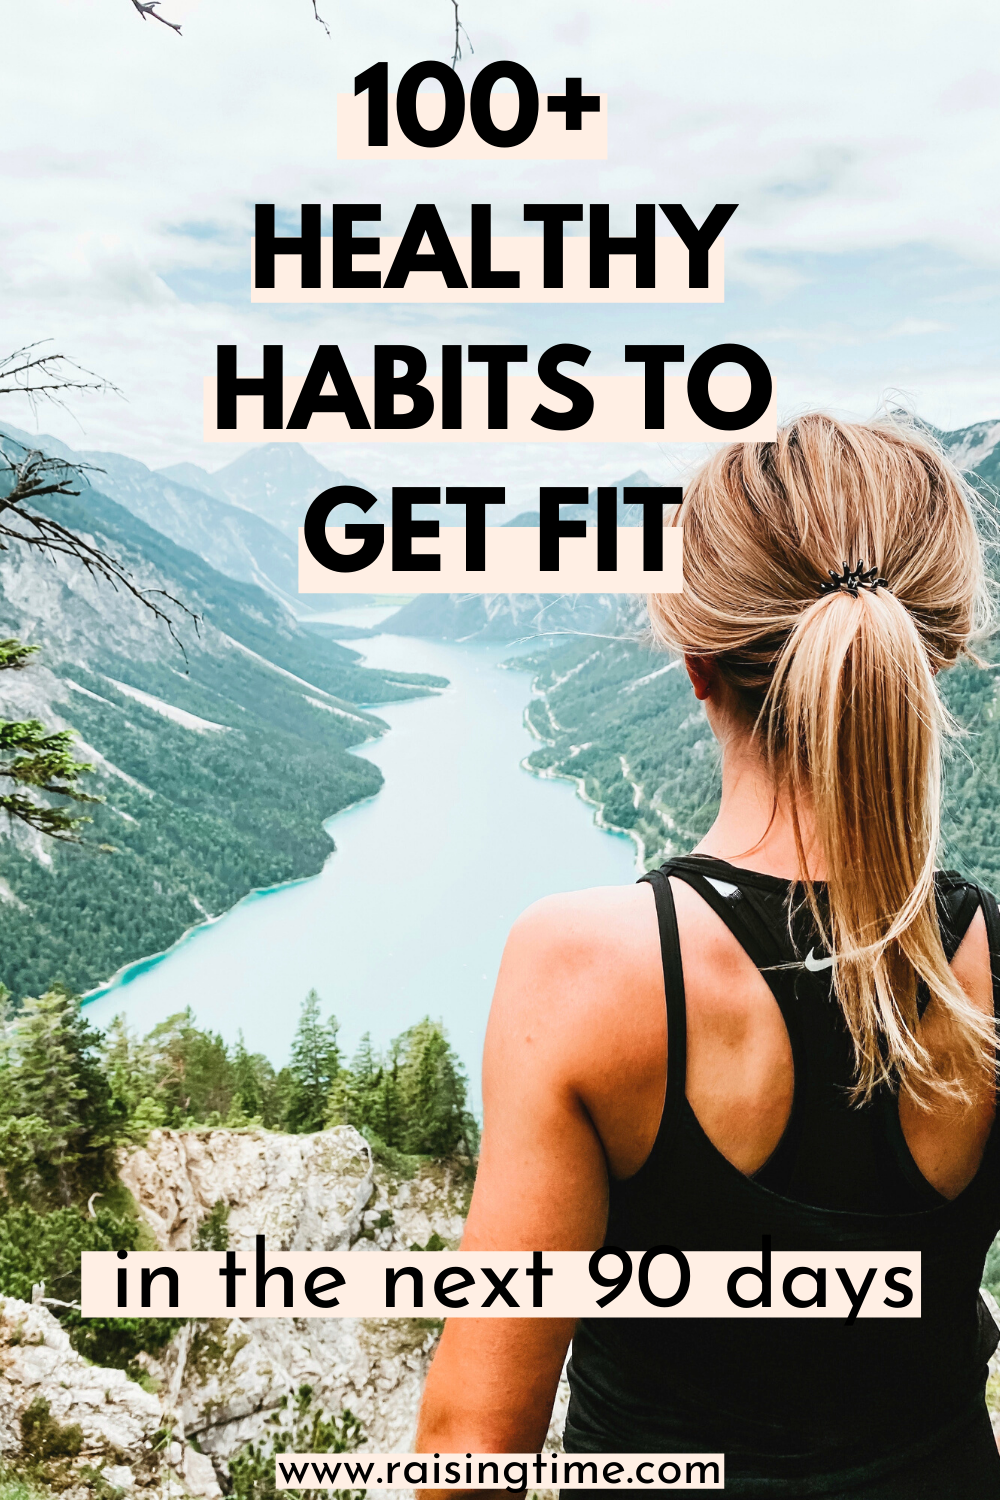 104 healthy habits that will help you get fit in 90 days! These healthy daily activities will help you improve your health and fitness and reach your fitness goals!